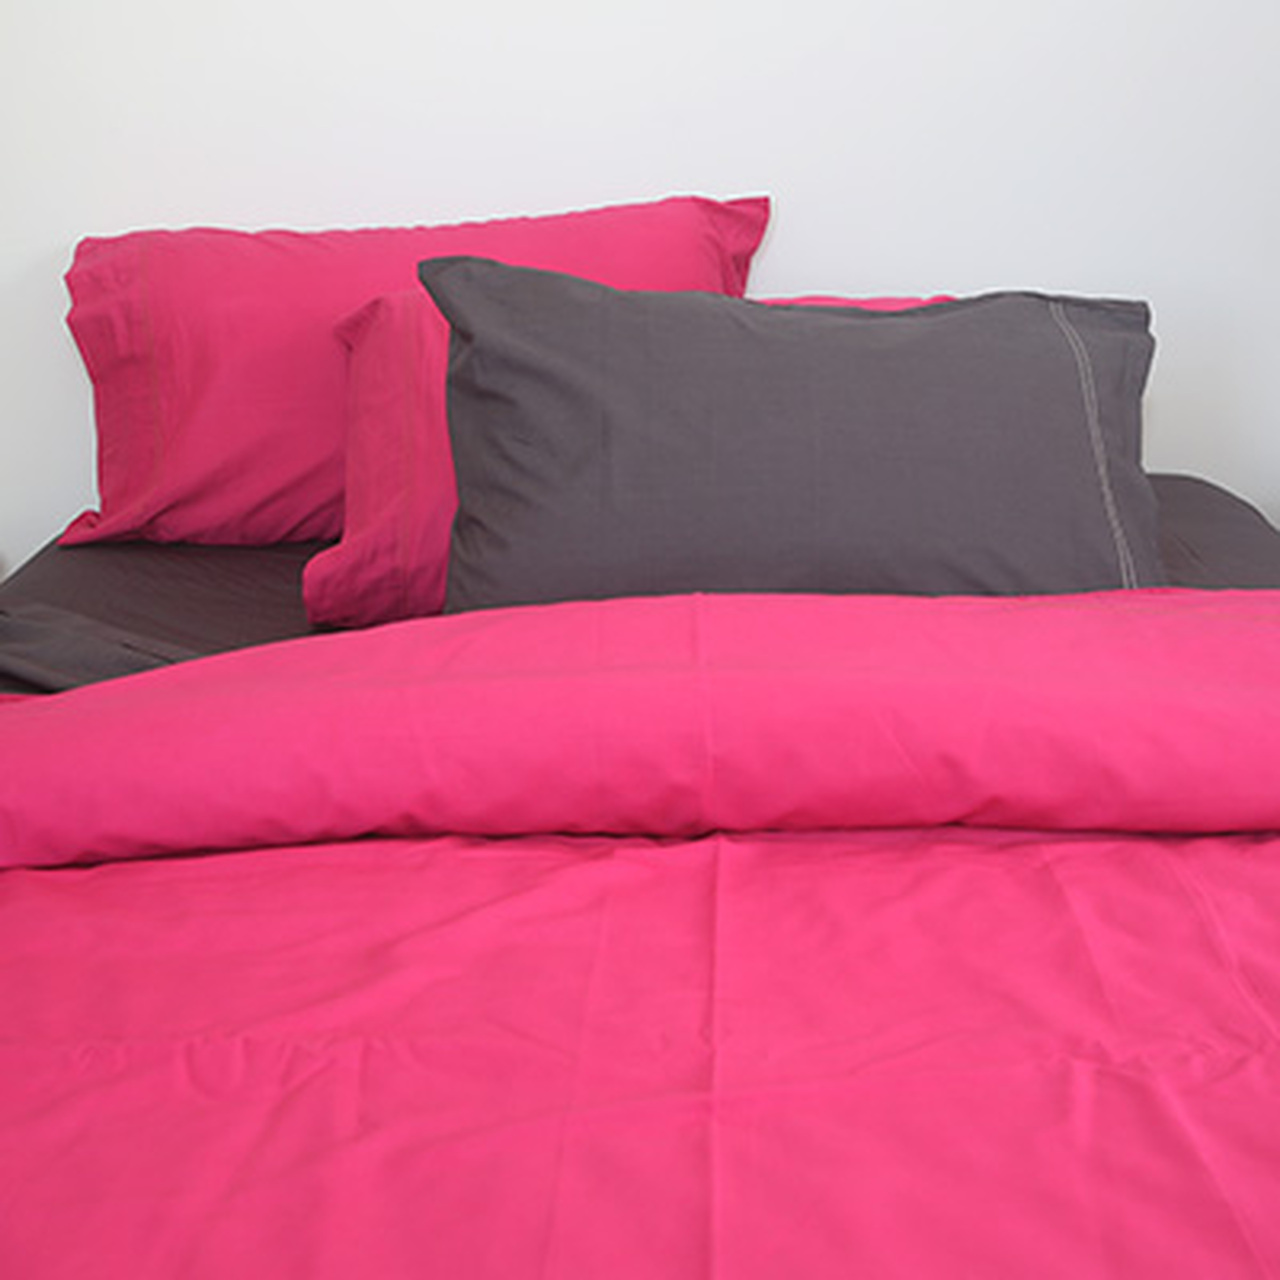 Learn What An Expert Has To Say On The Organic Cotton Sheets